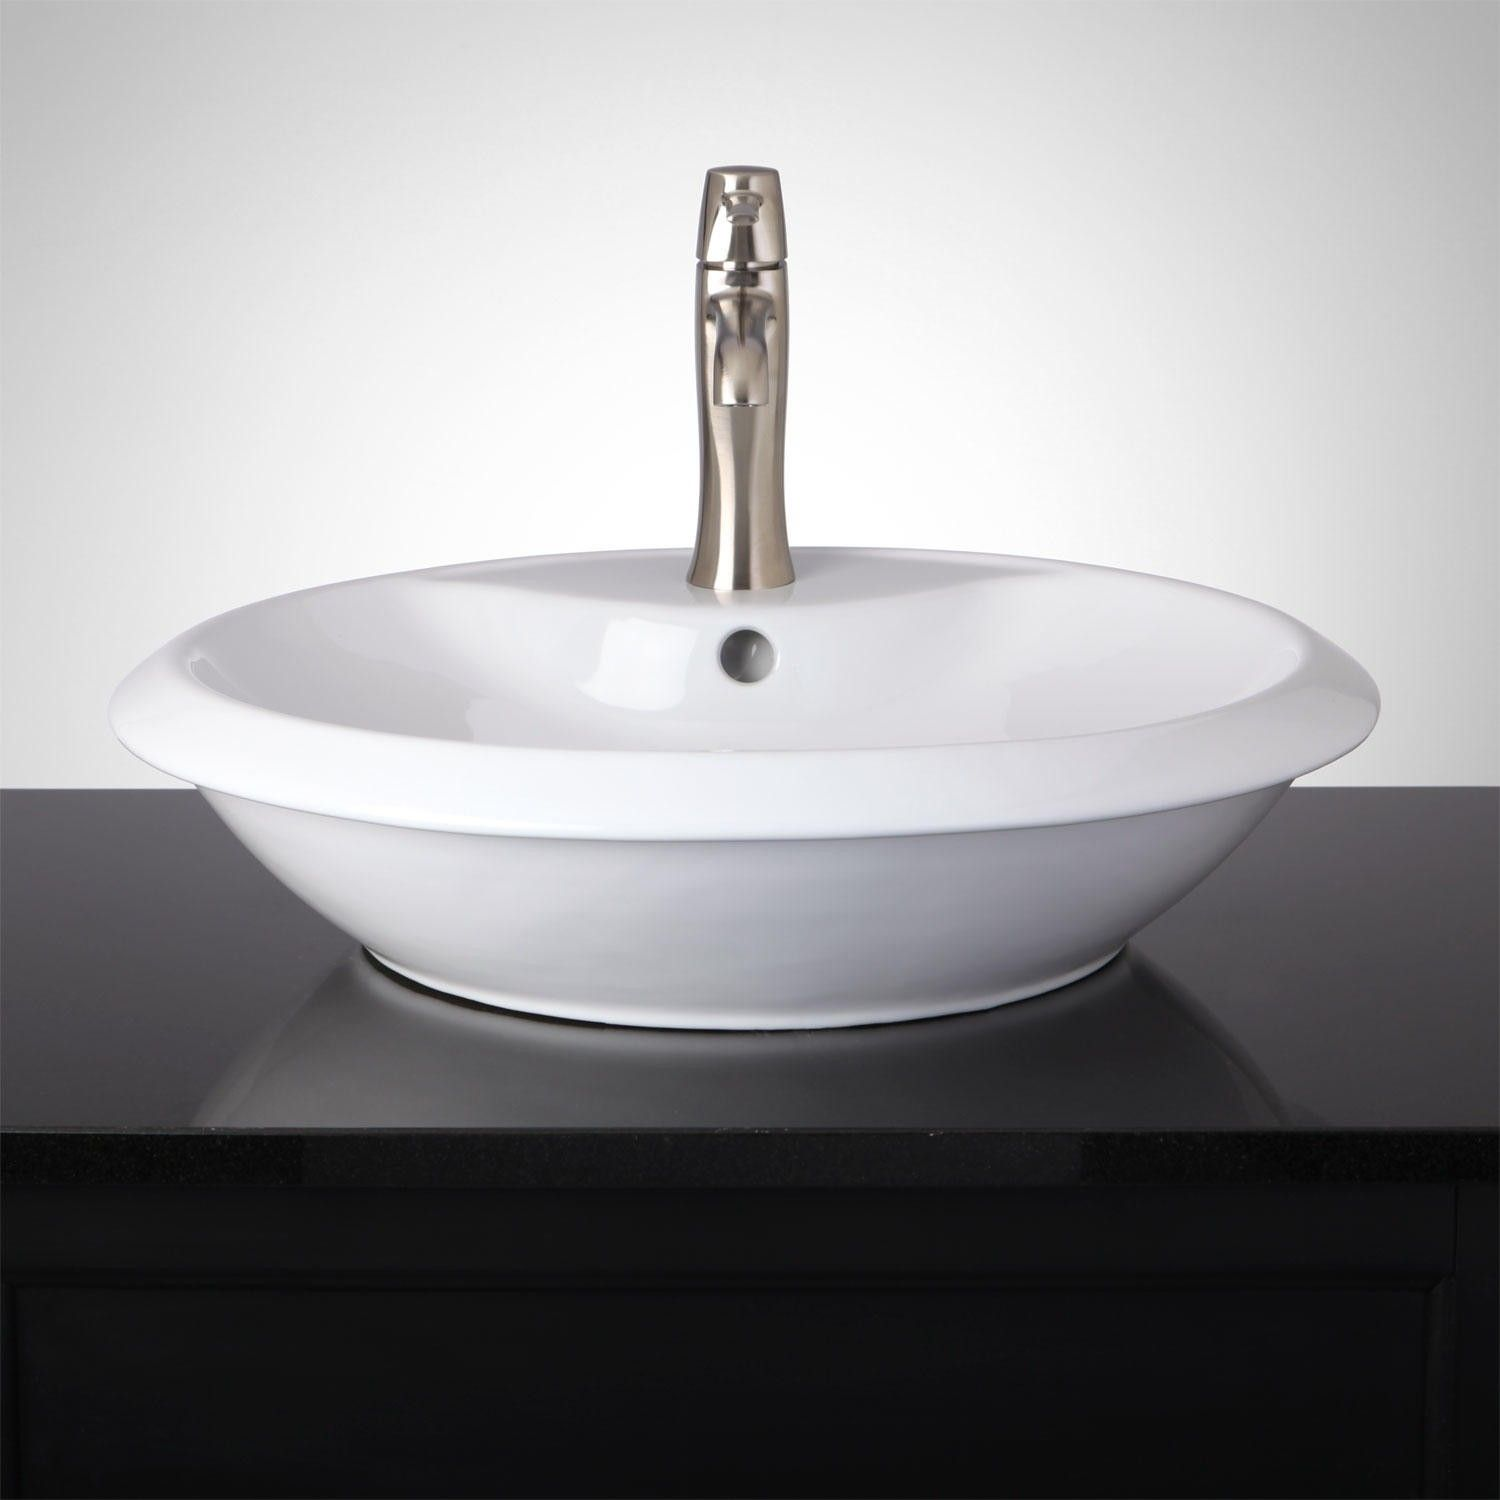 for vessel best artistic your home the oval elite bronze glass oil stone rubbed unique sink lowes tempered what bathroom improbable sinks